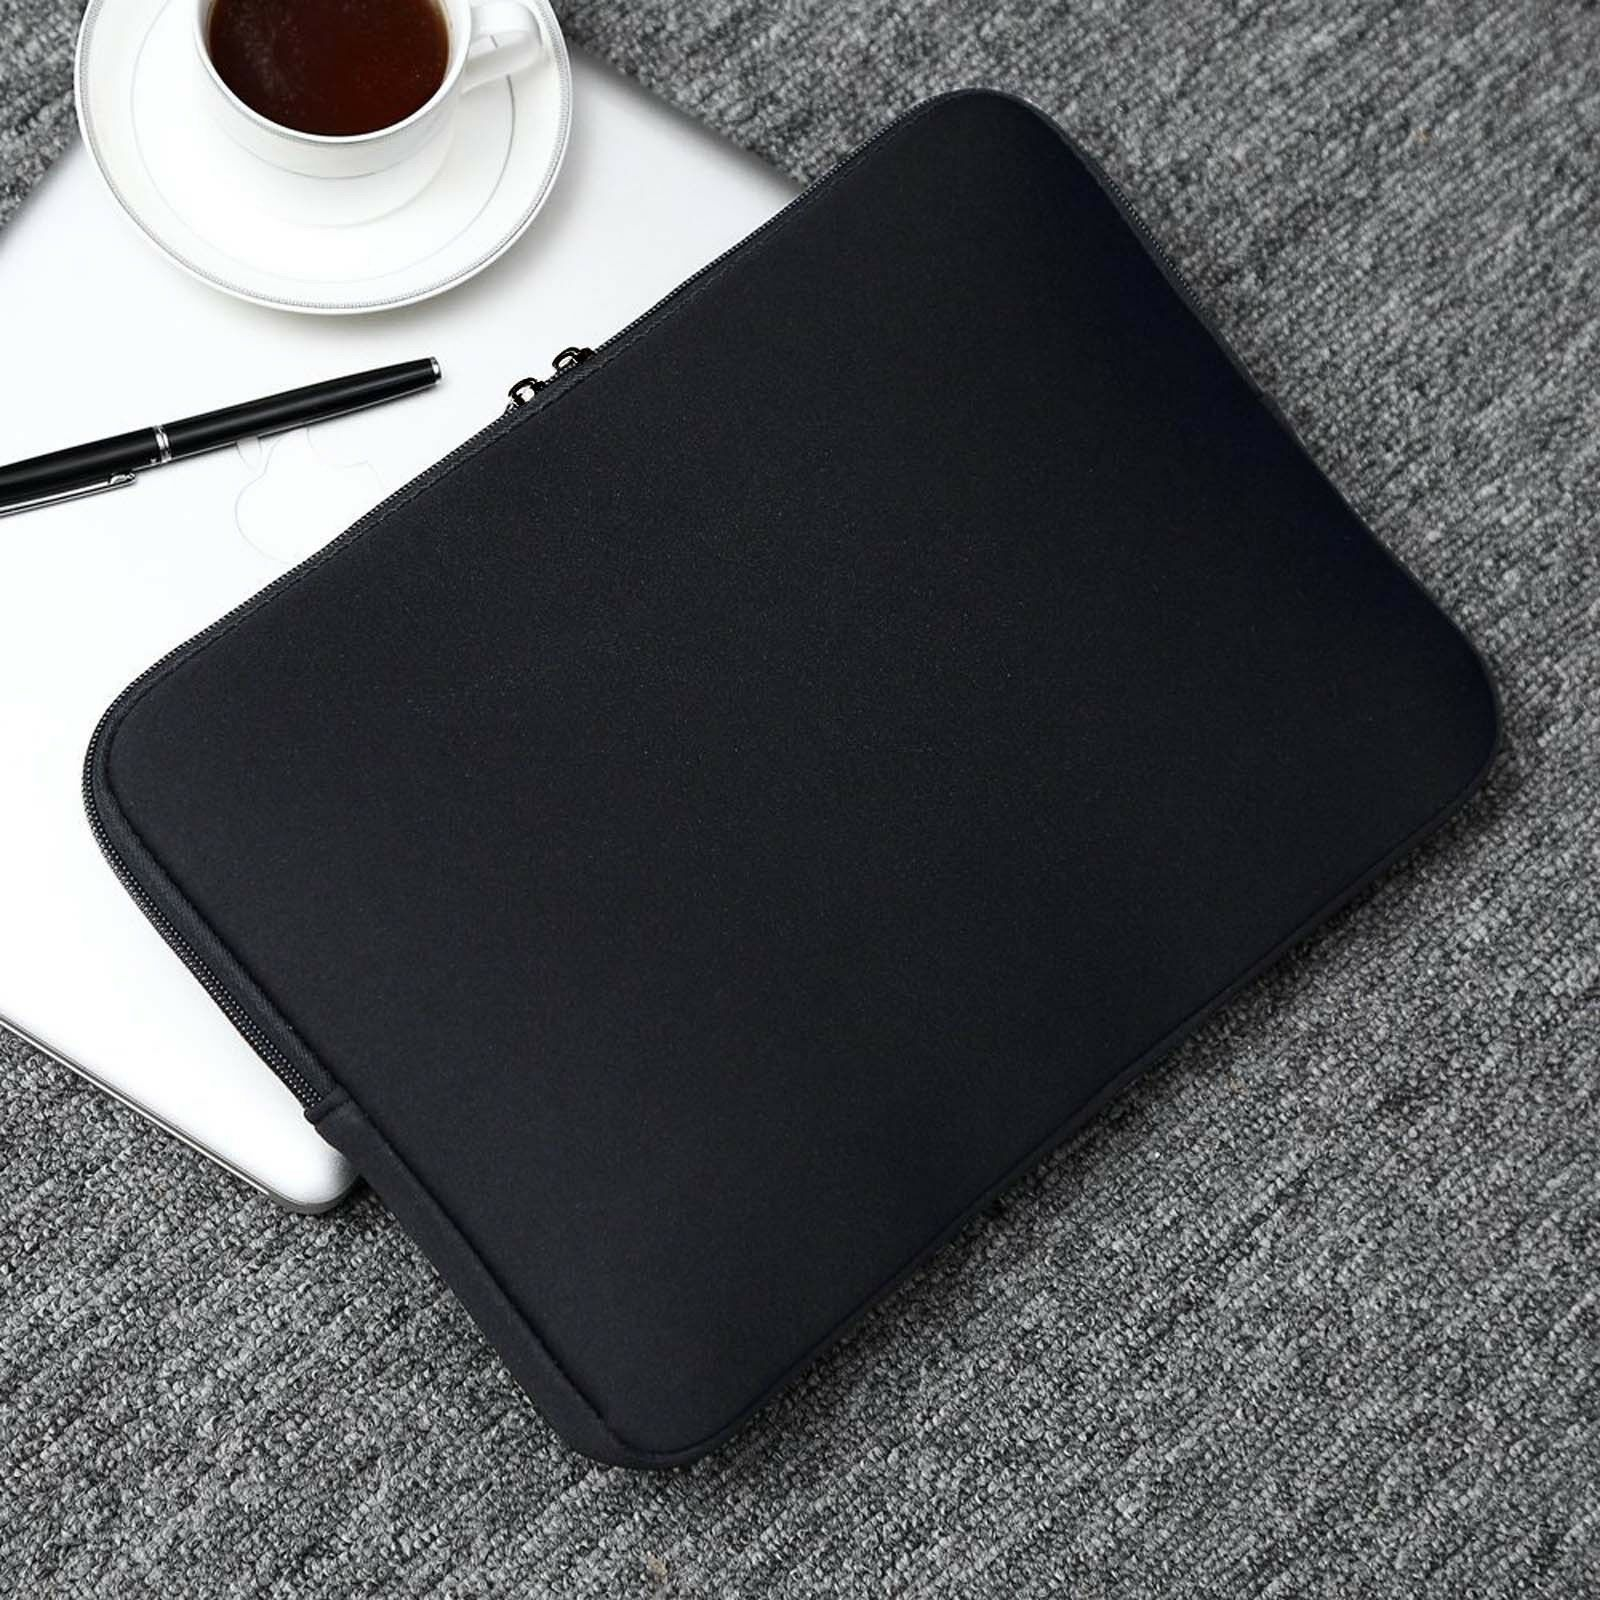 Shock Resistant Laptop Sleeve Case For 13 Inch MacBook Pro R